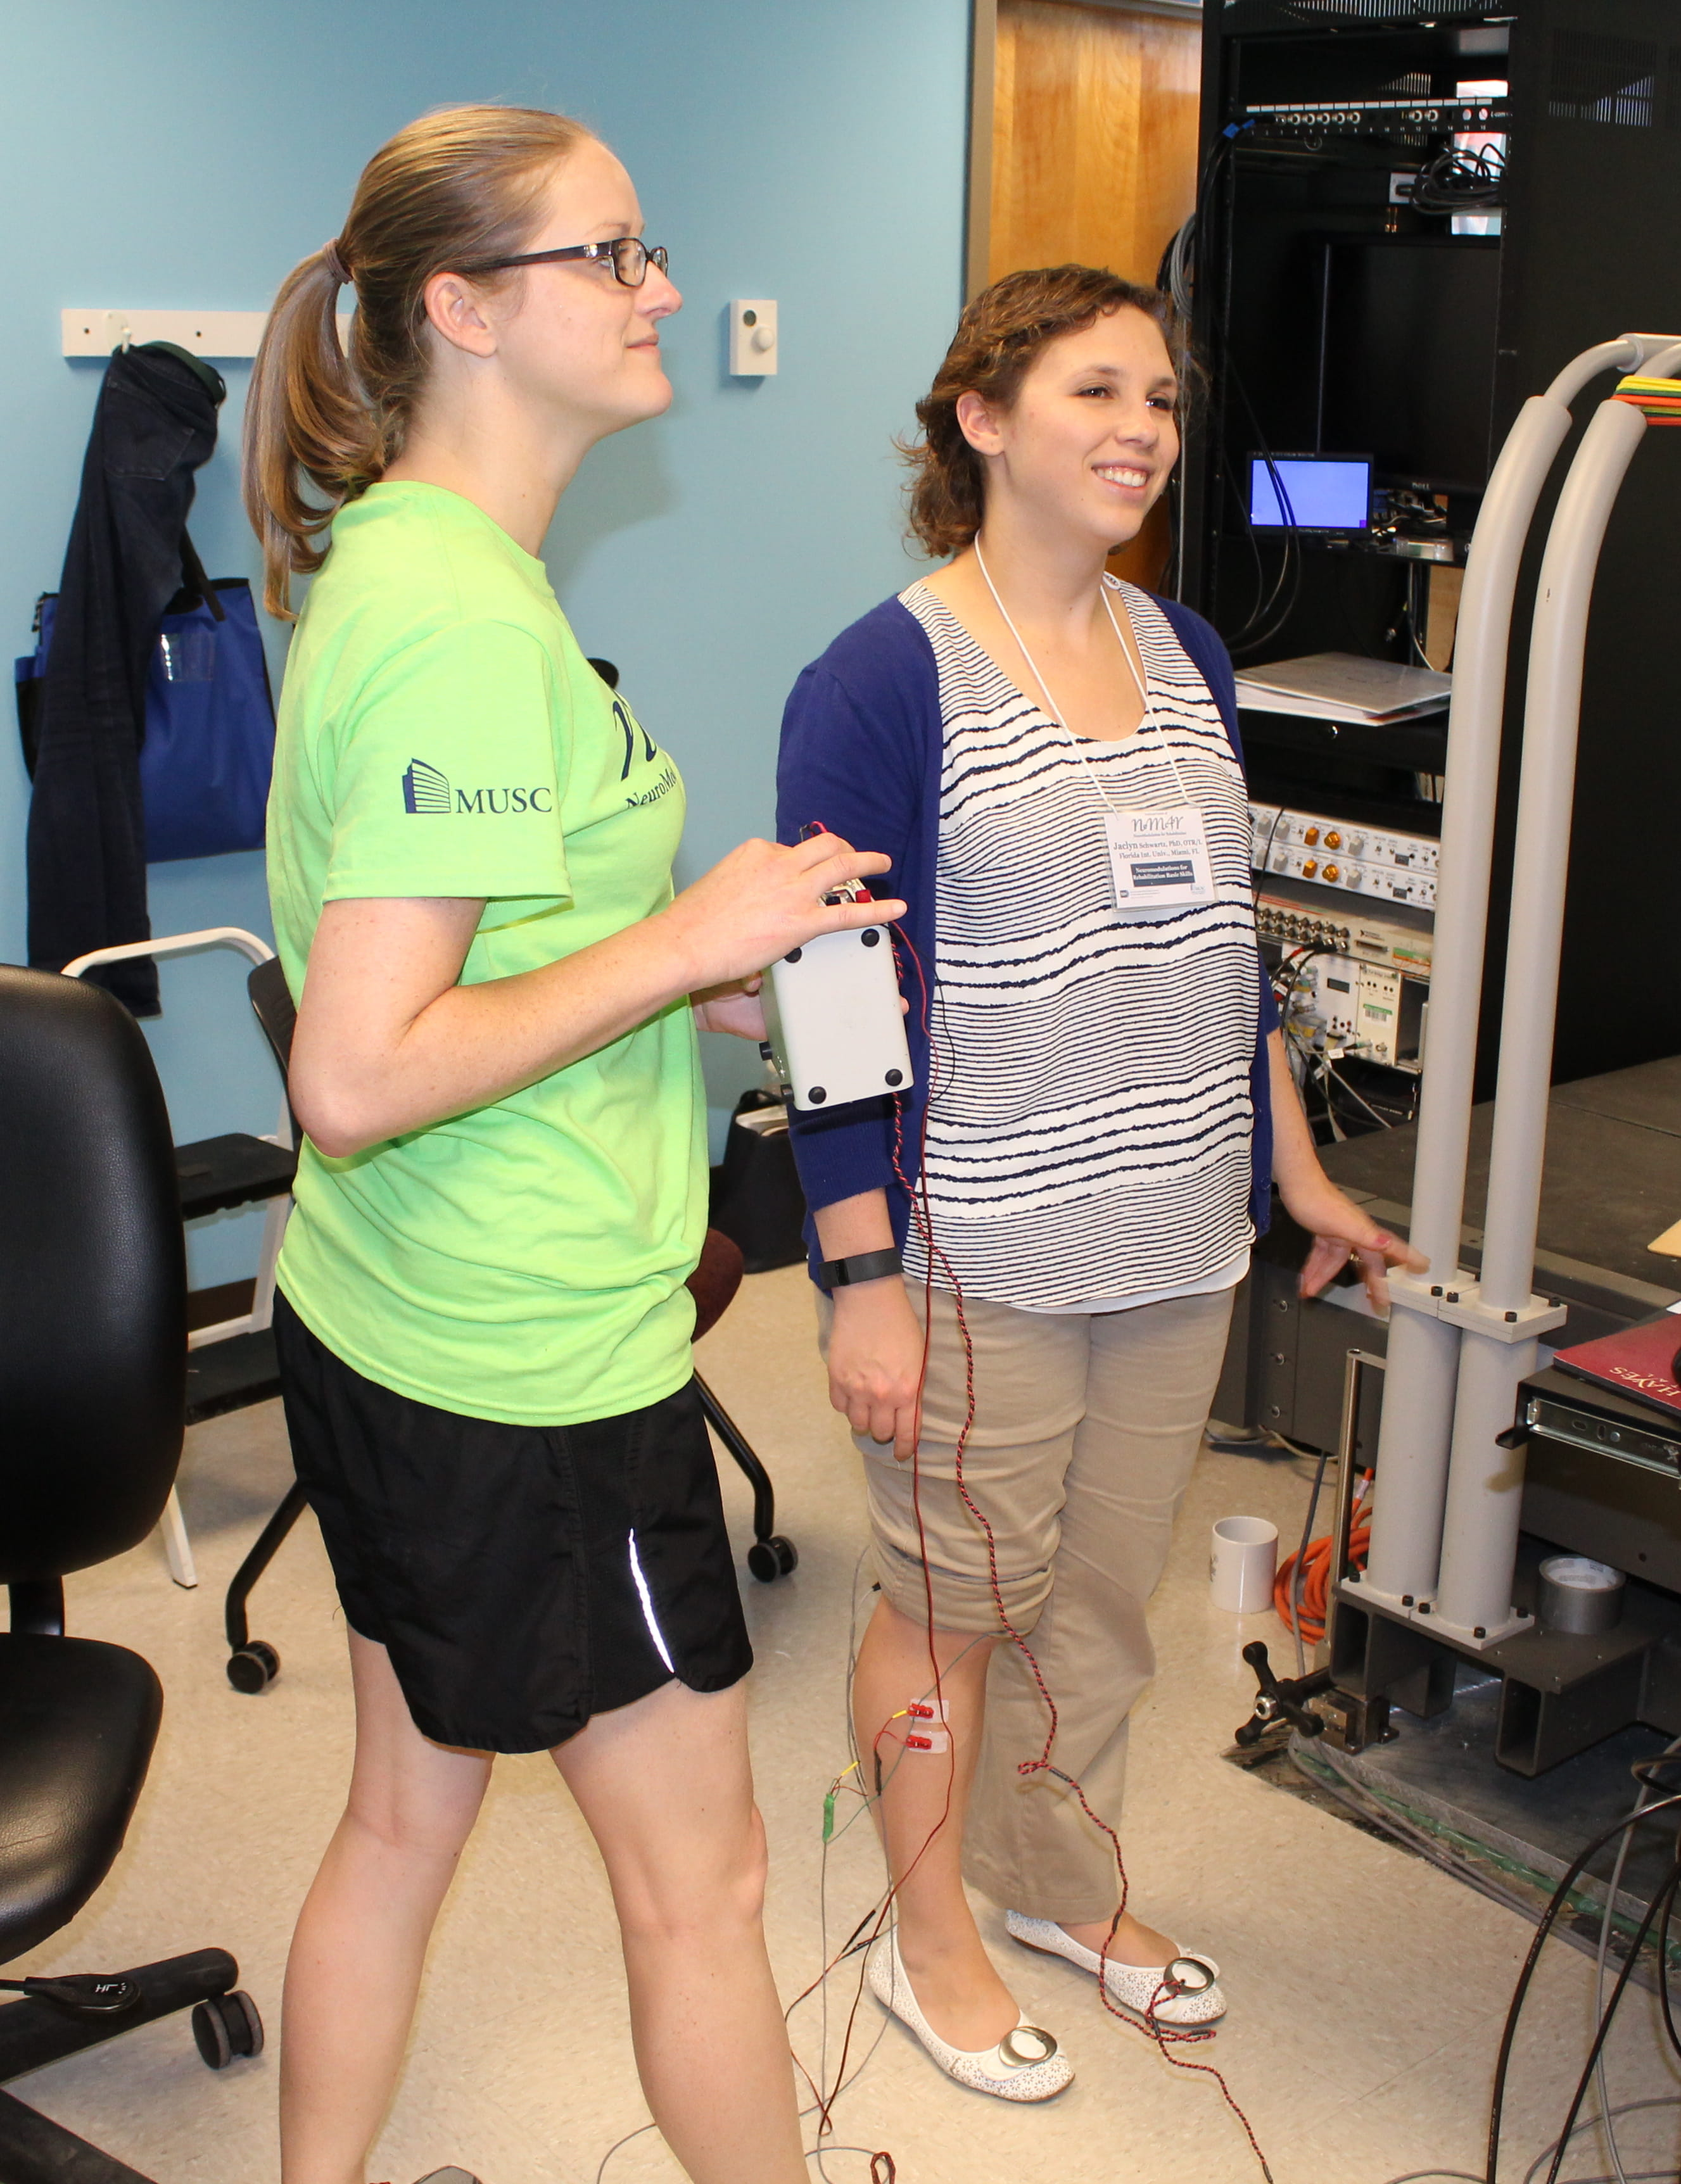 Workshop participants demonstrating Operant Conditioning of EMG-evoked potential